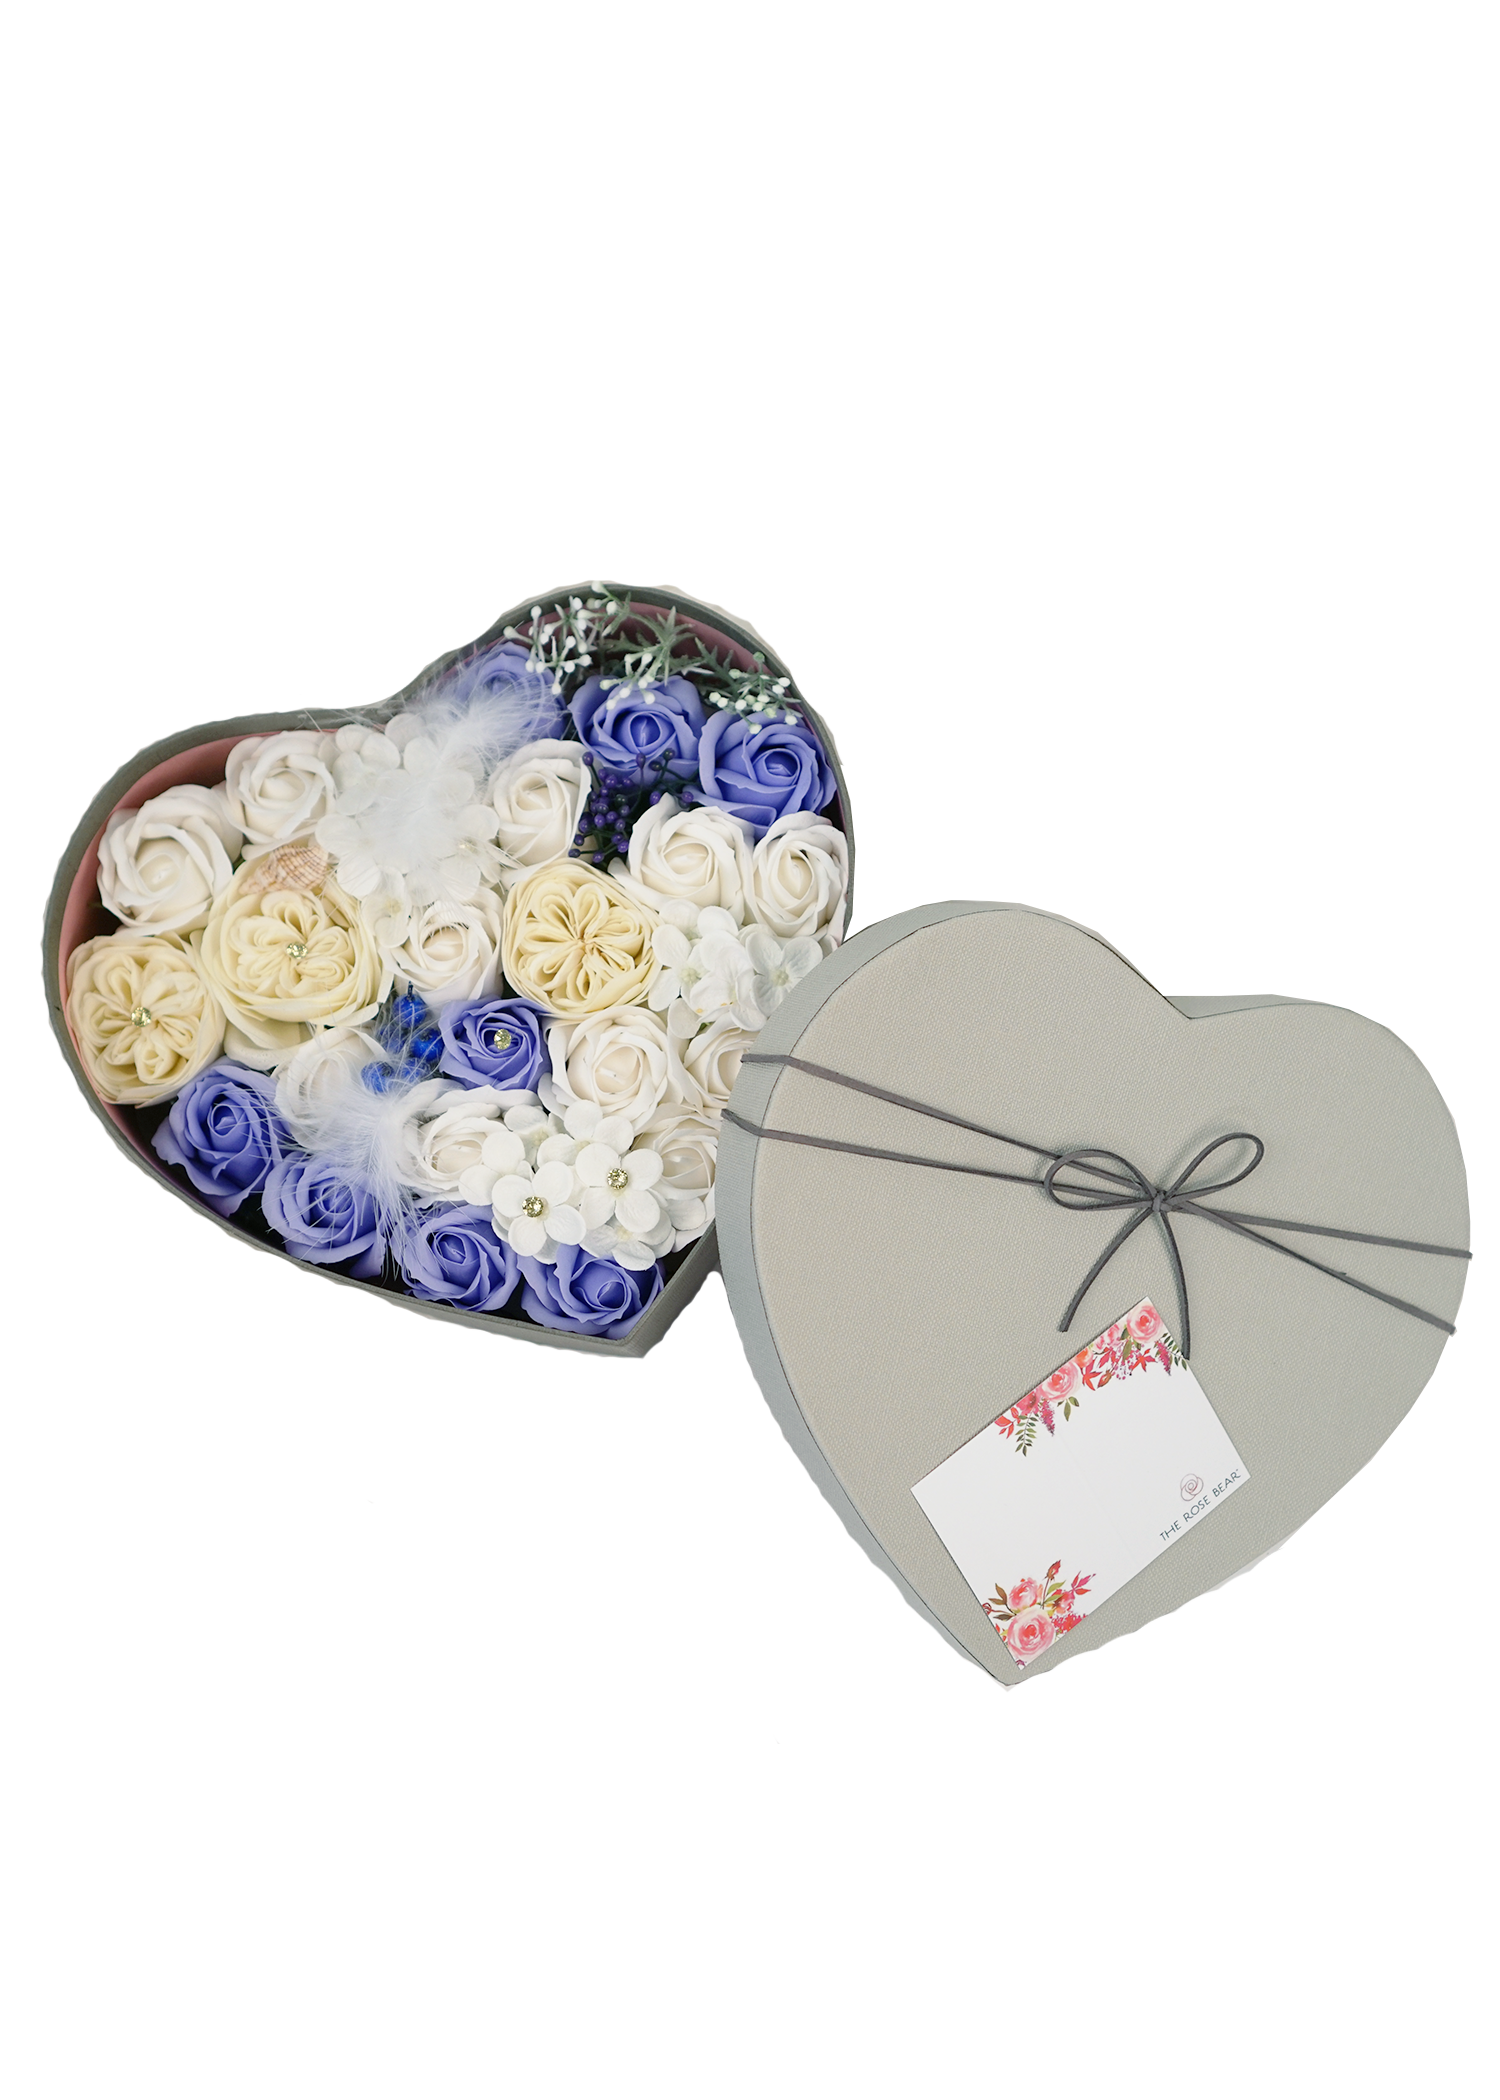 Periwinkle Sea Soap Roses in a Heart Box